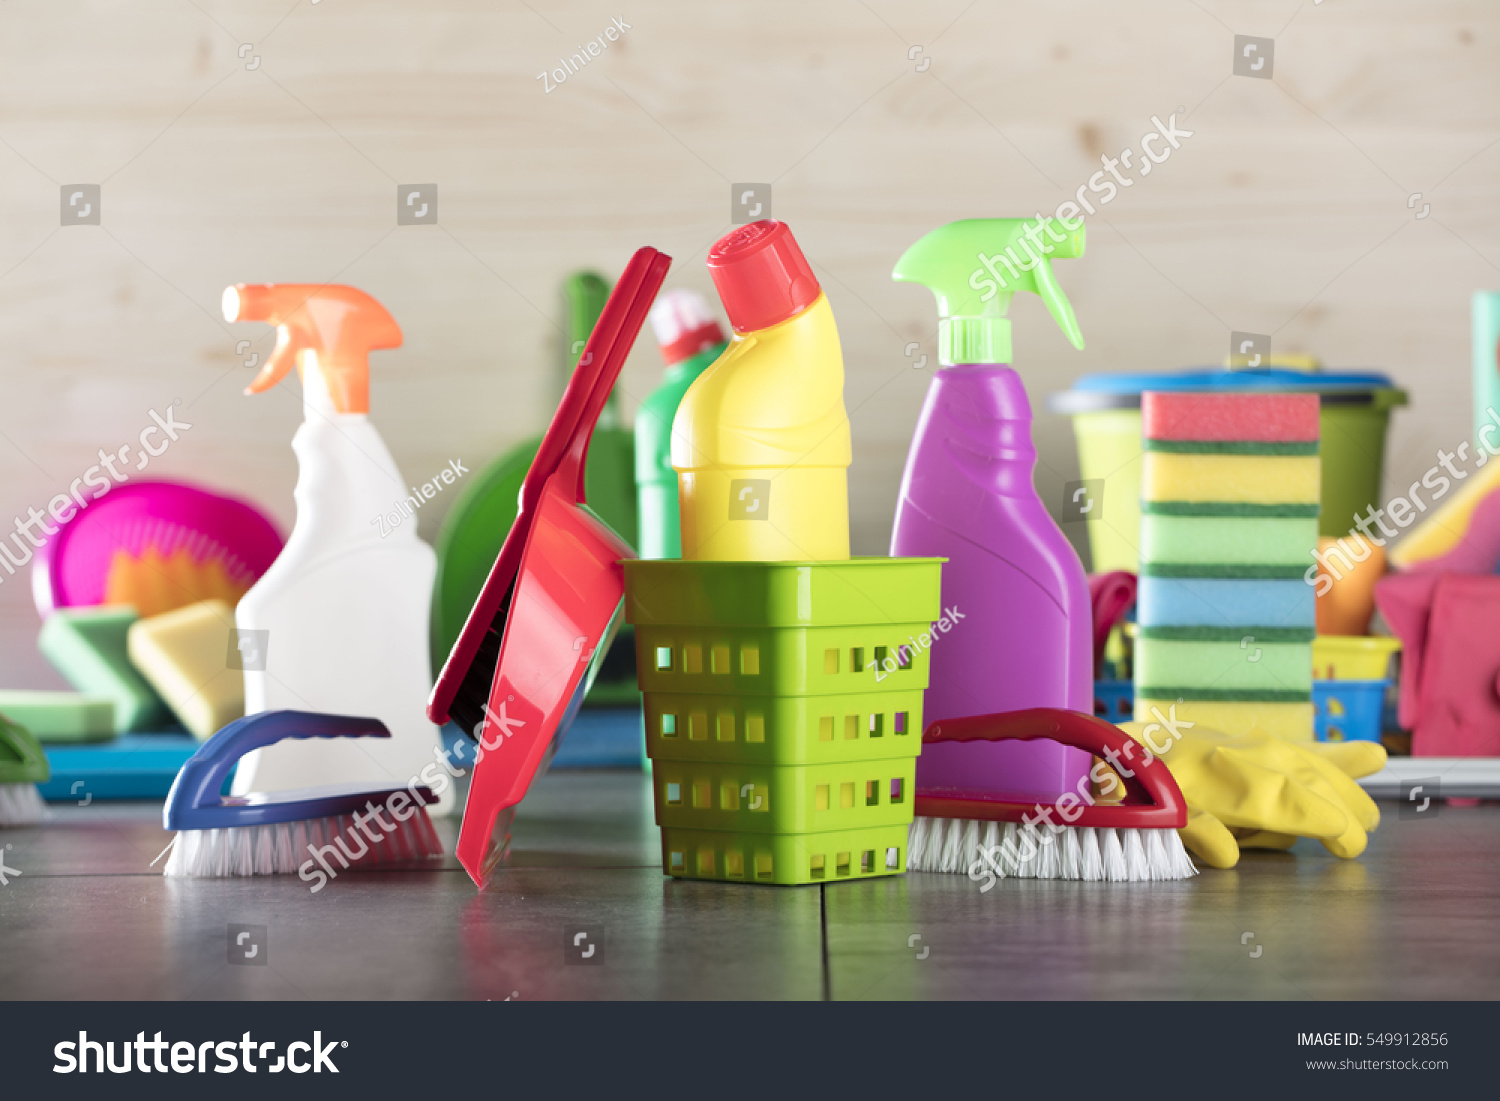 Cleaning products home cleaning concept wooden stock photo 549912856 cleaning products home cleaning concept wooden background gray tile floor place for dailygadgetfo Image collections